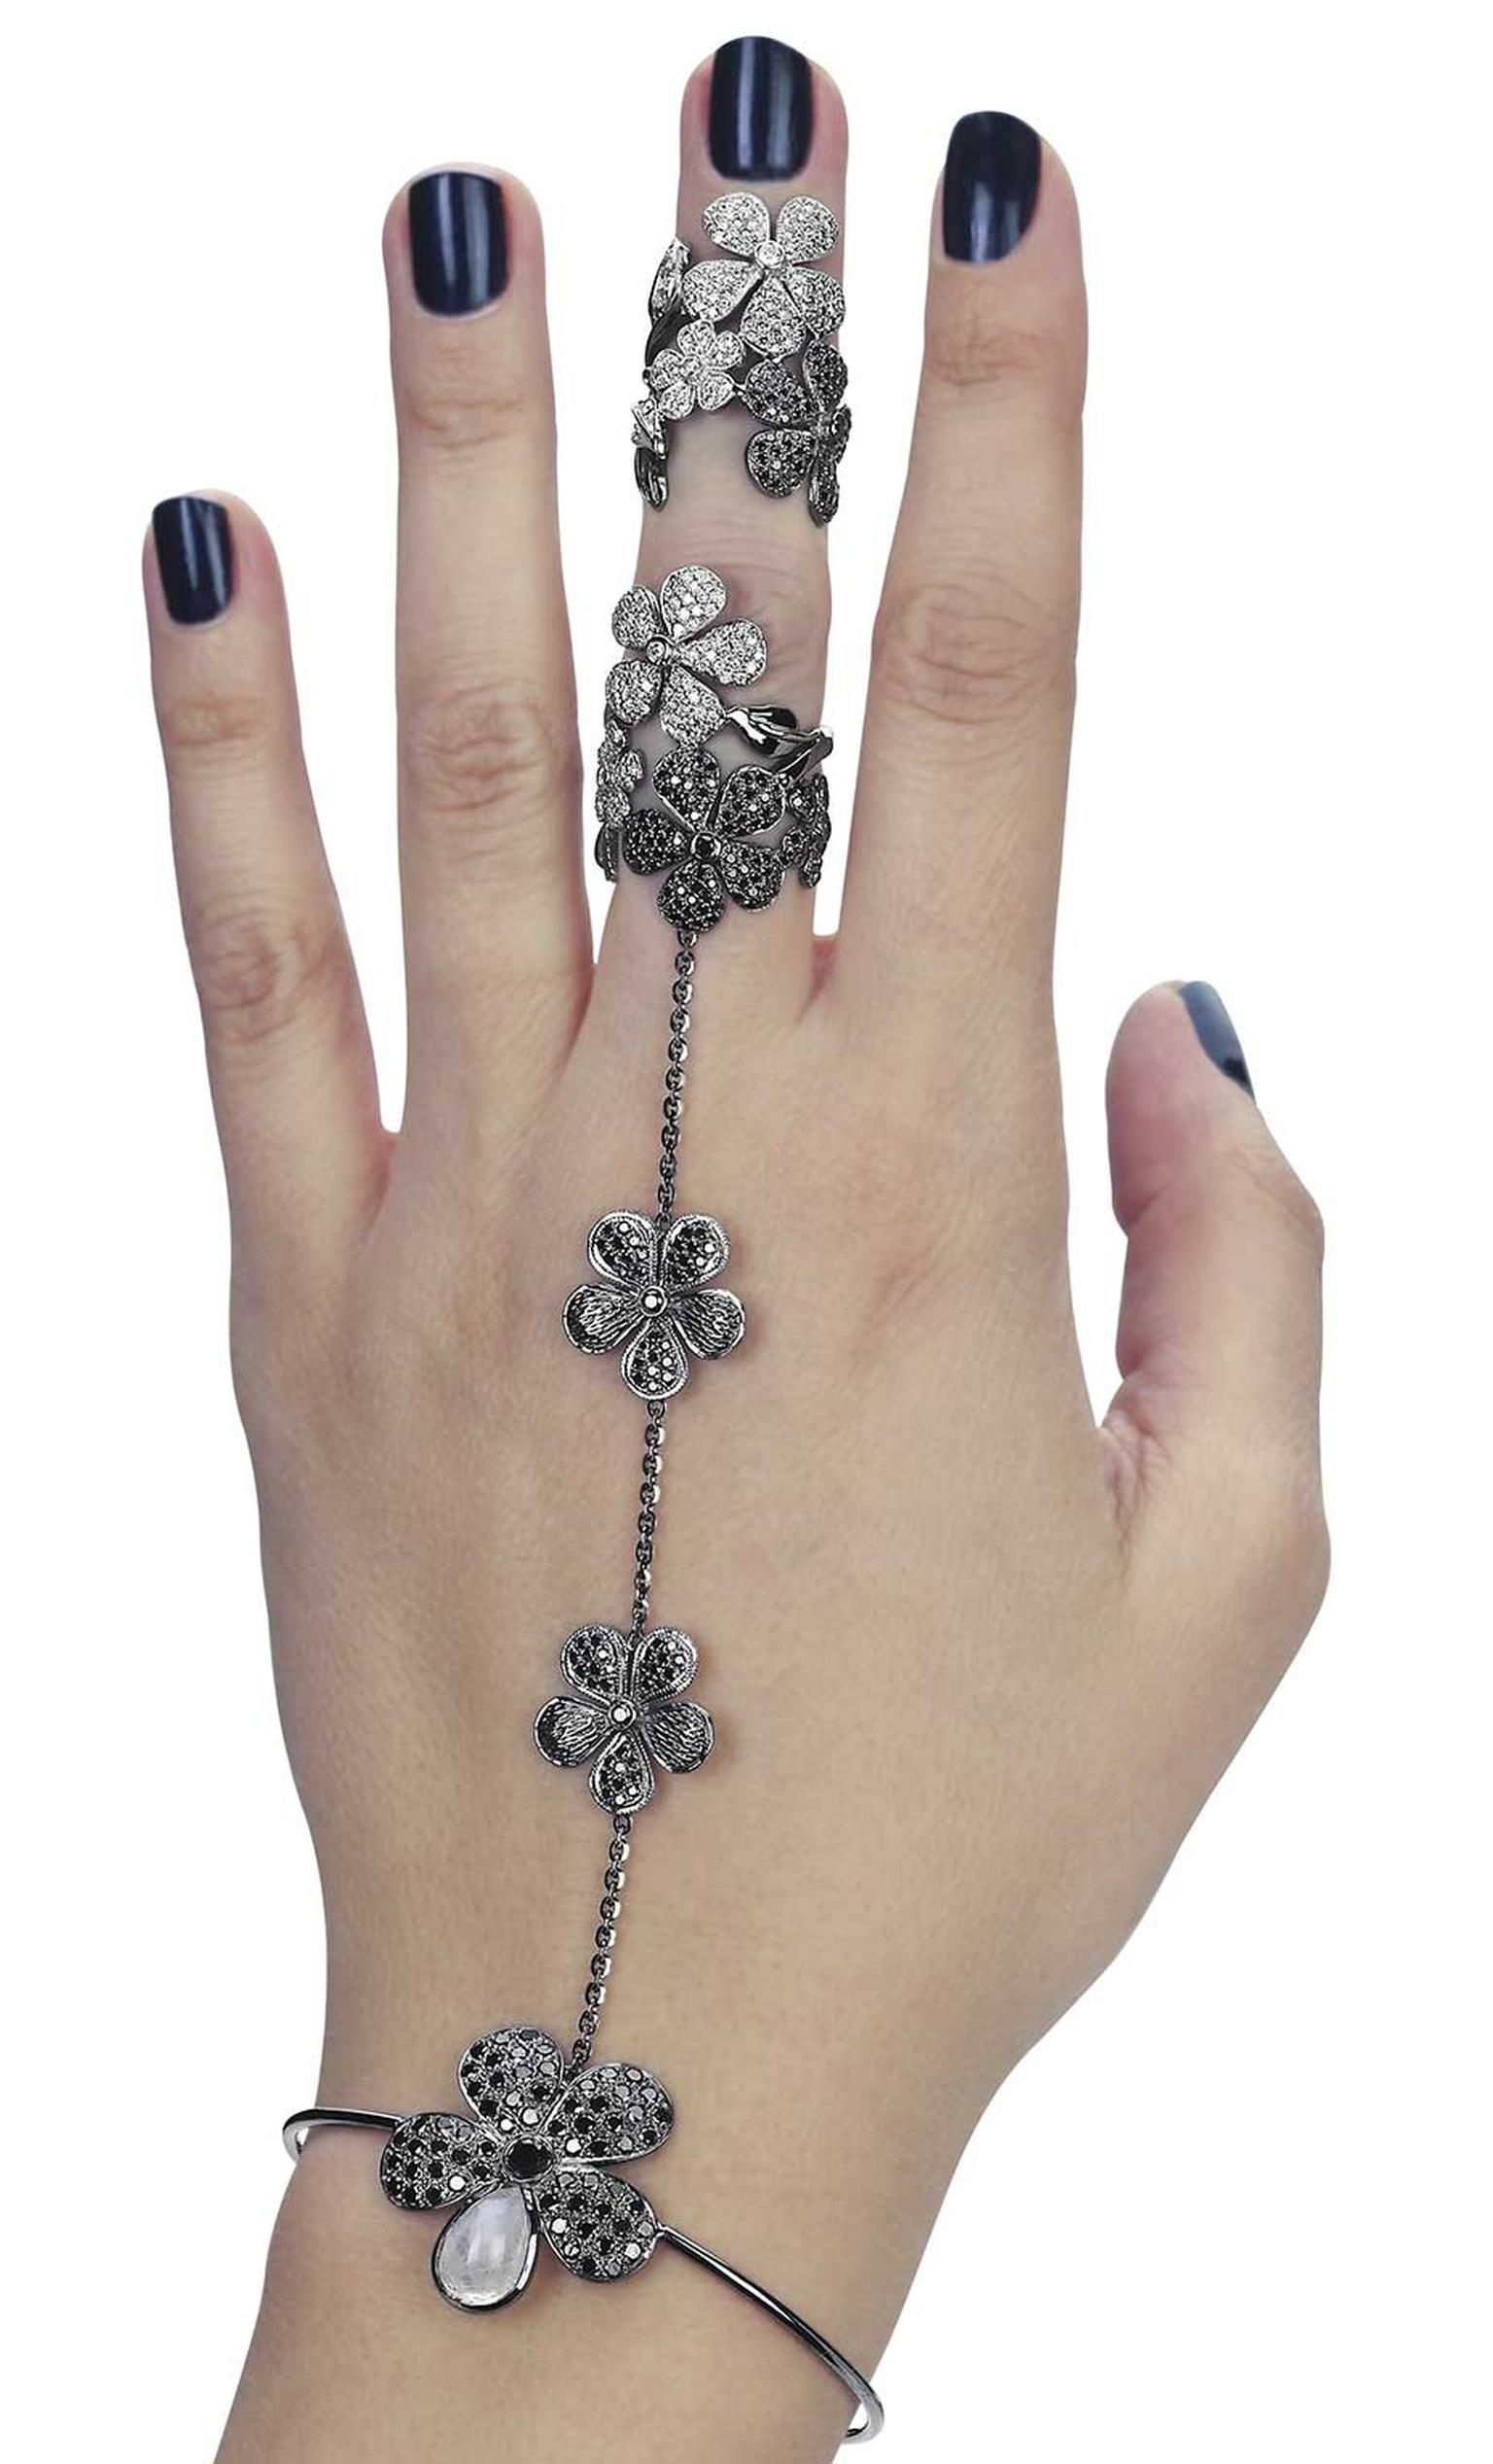 Colette's flower hand jewel wraps around the wrist and middle finger in a fashionable mix of black and white diamonds. See it at the Couture Show Las Vegas